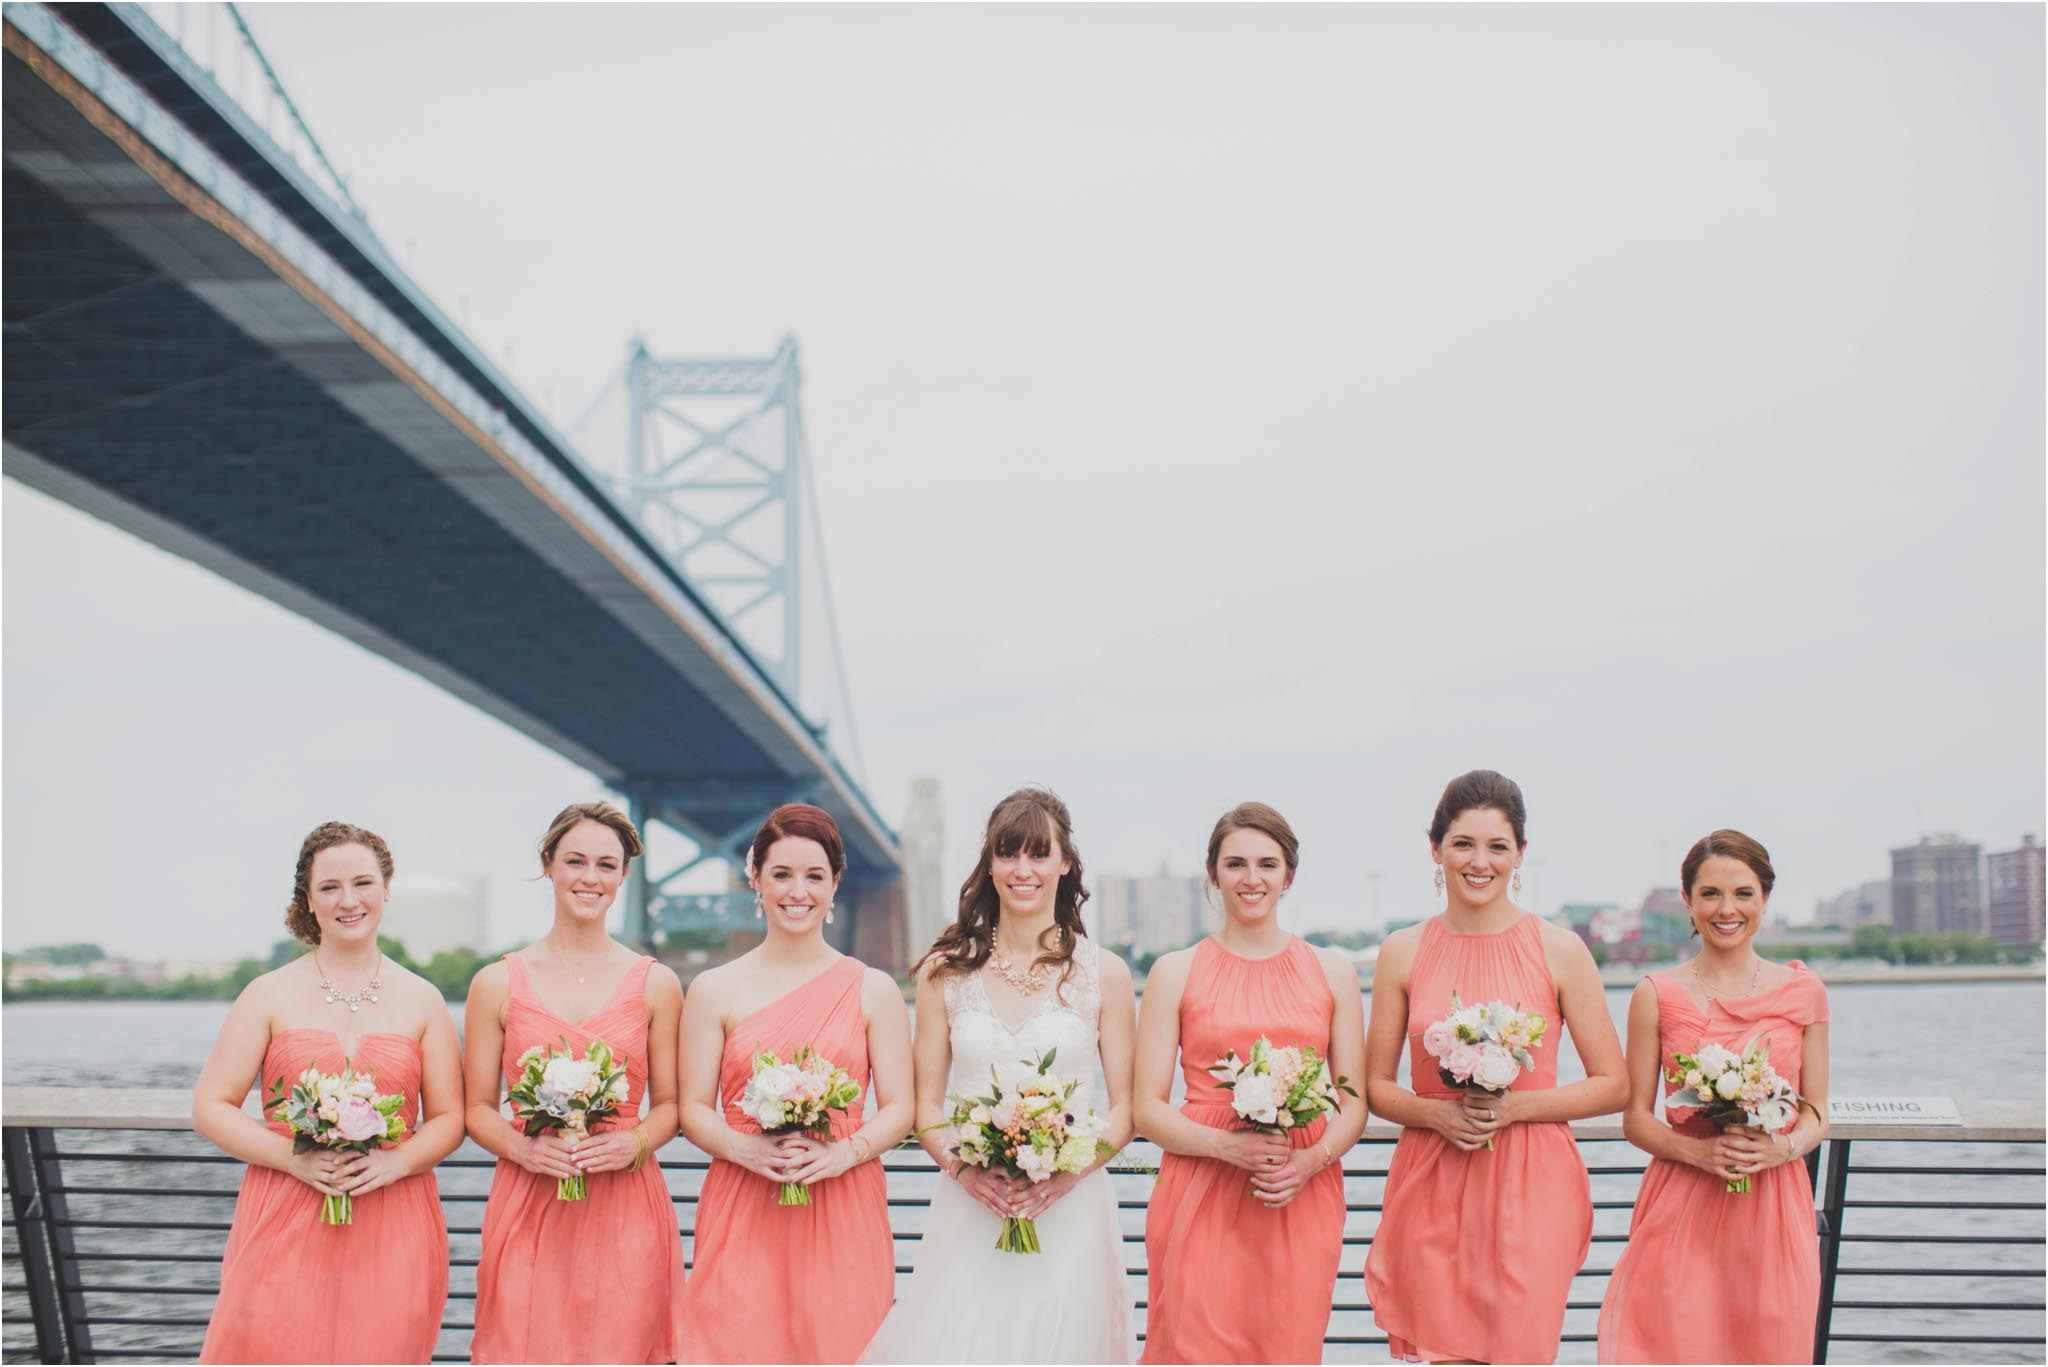 Race SRace Street Pier, bridal partytreet Pier, first look